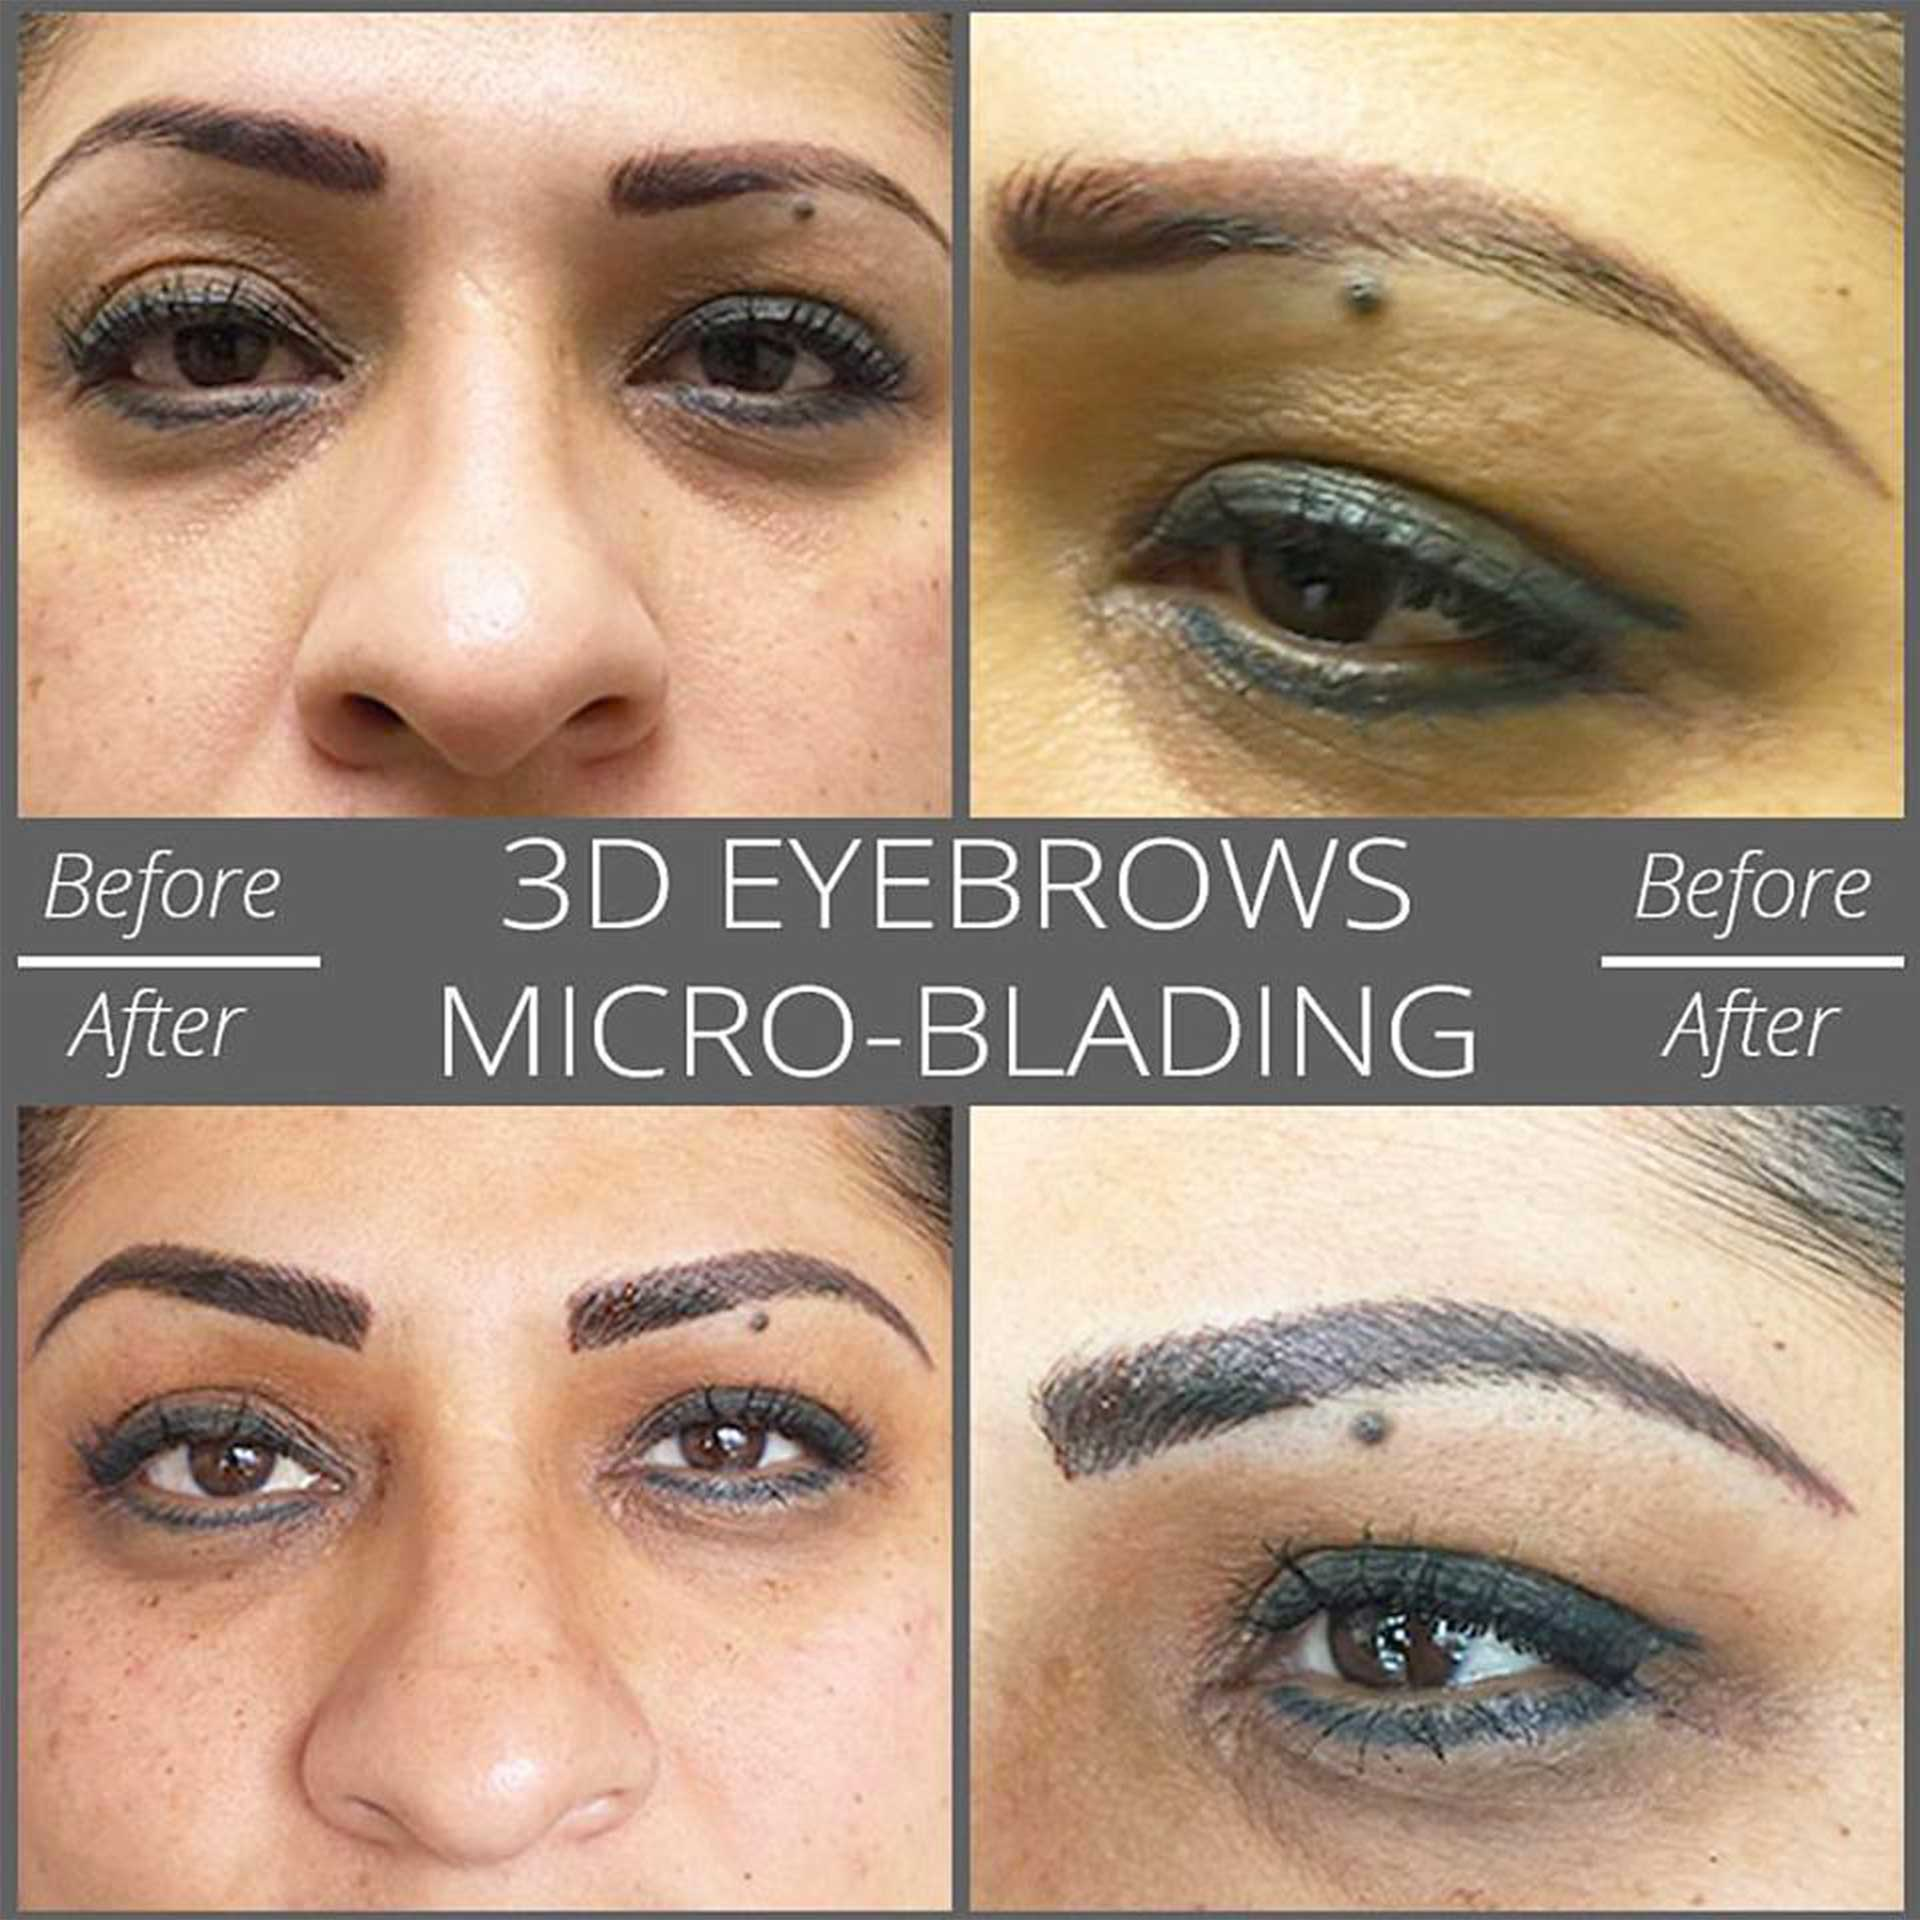 3D-eyebrows-las-vegas-micro-blading-tattoo-correction-eyebrows | New ...